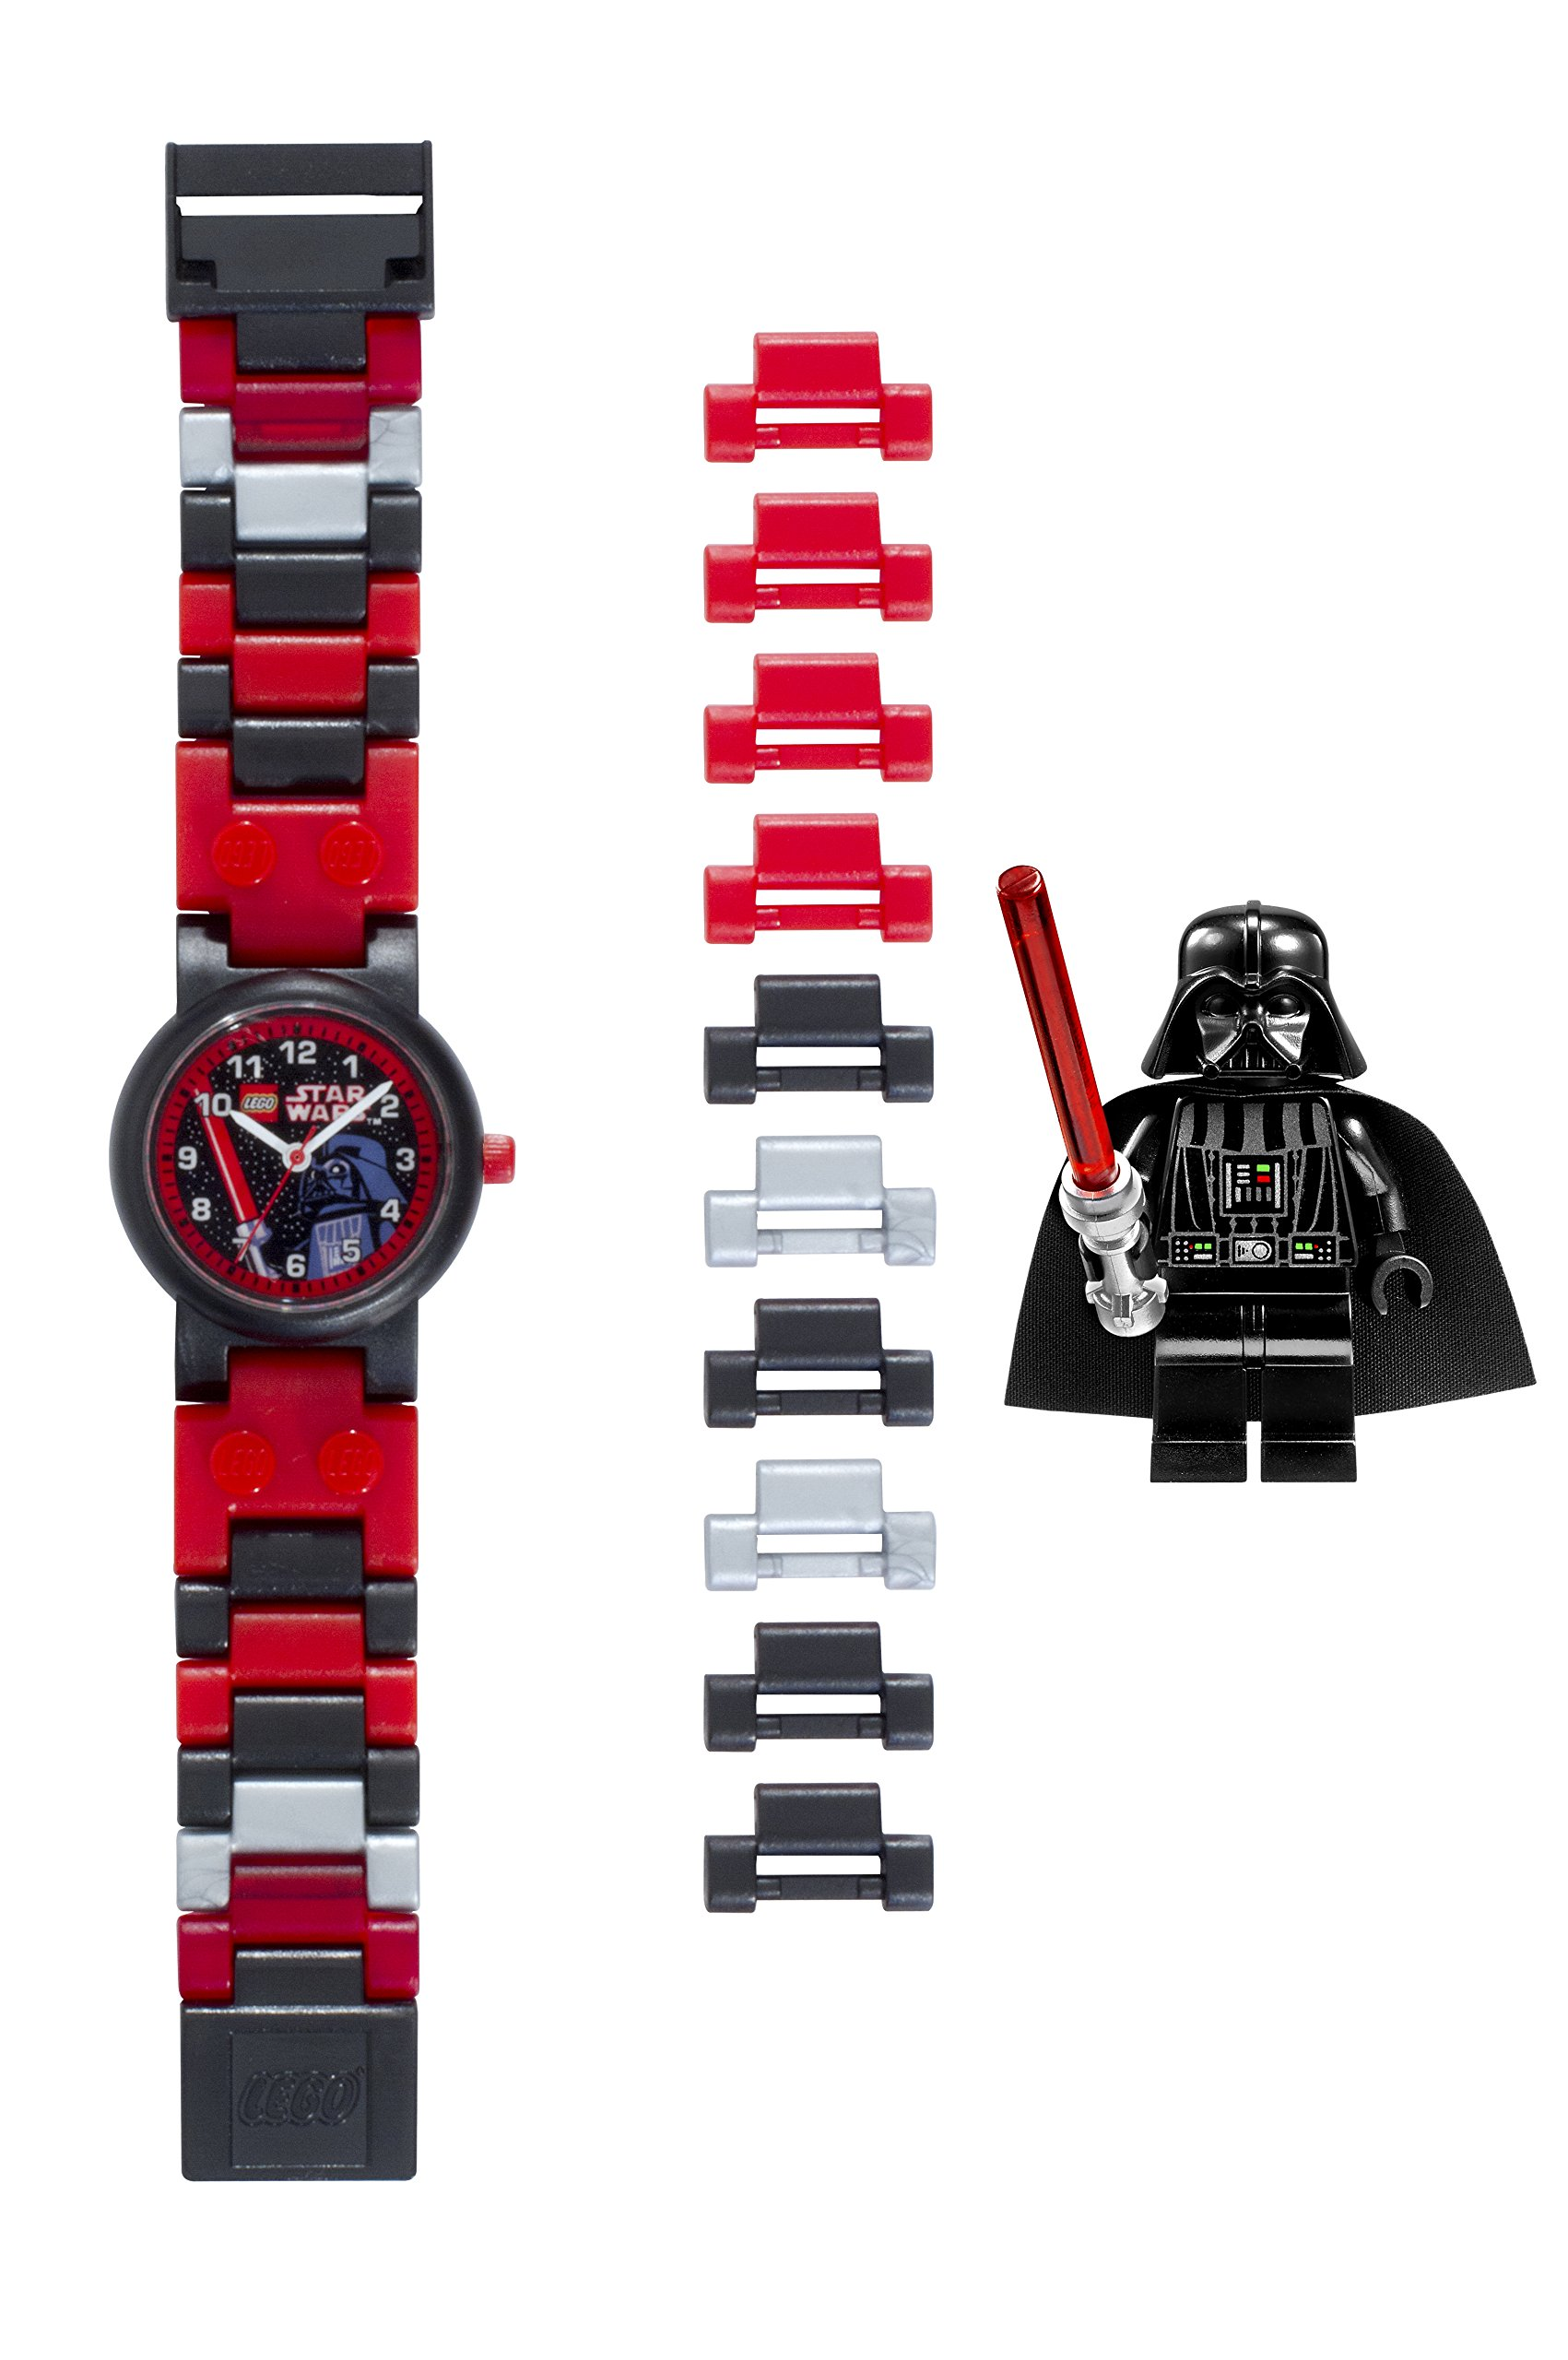 LEGO Star Wars 8020301 Darth Vader Kids Buildable Watch with Link Bracelet and Minifigure | black/red | plastic | 25mm case diameter| analog quartz | boy girl | official